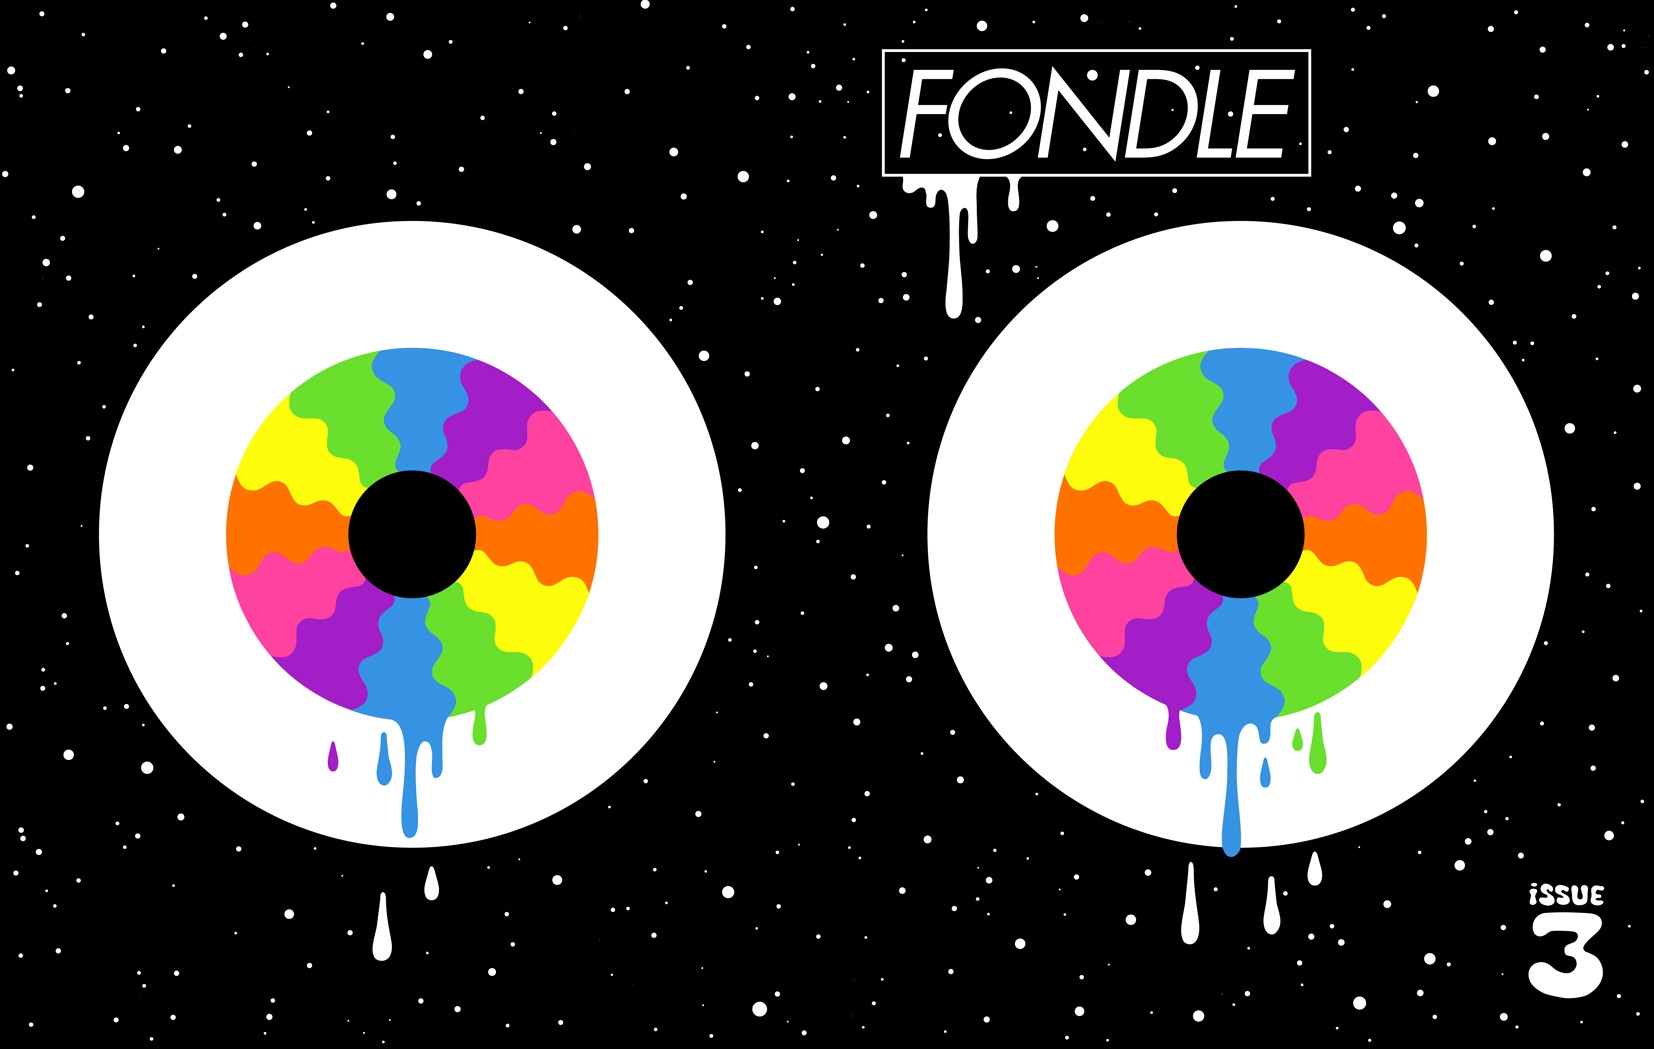 Fondle 3 Cover